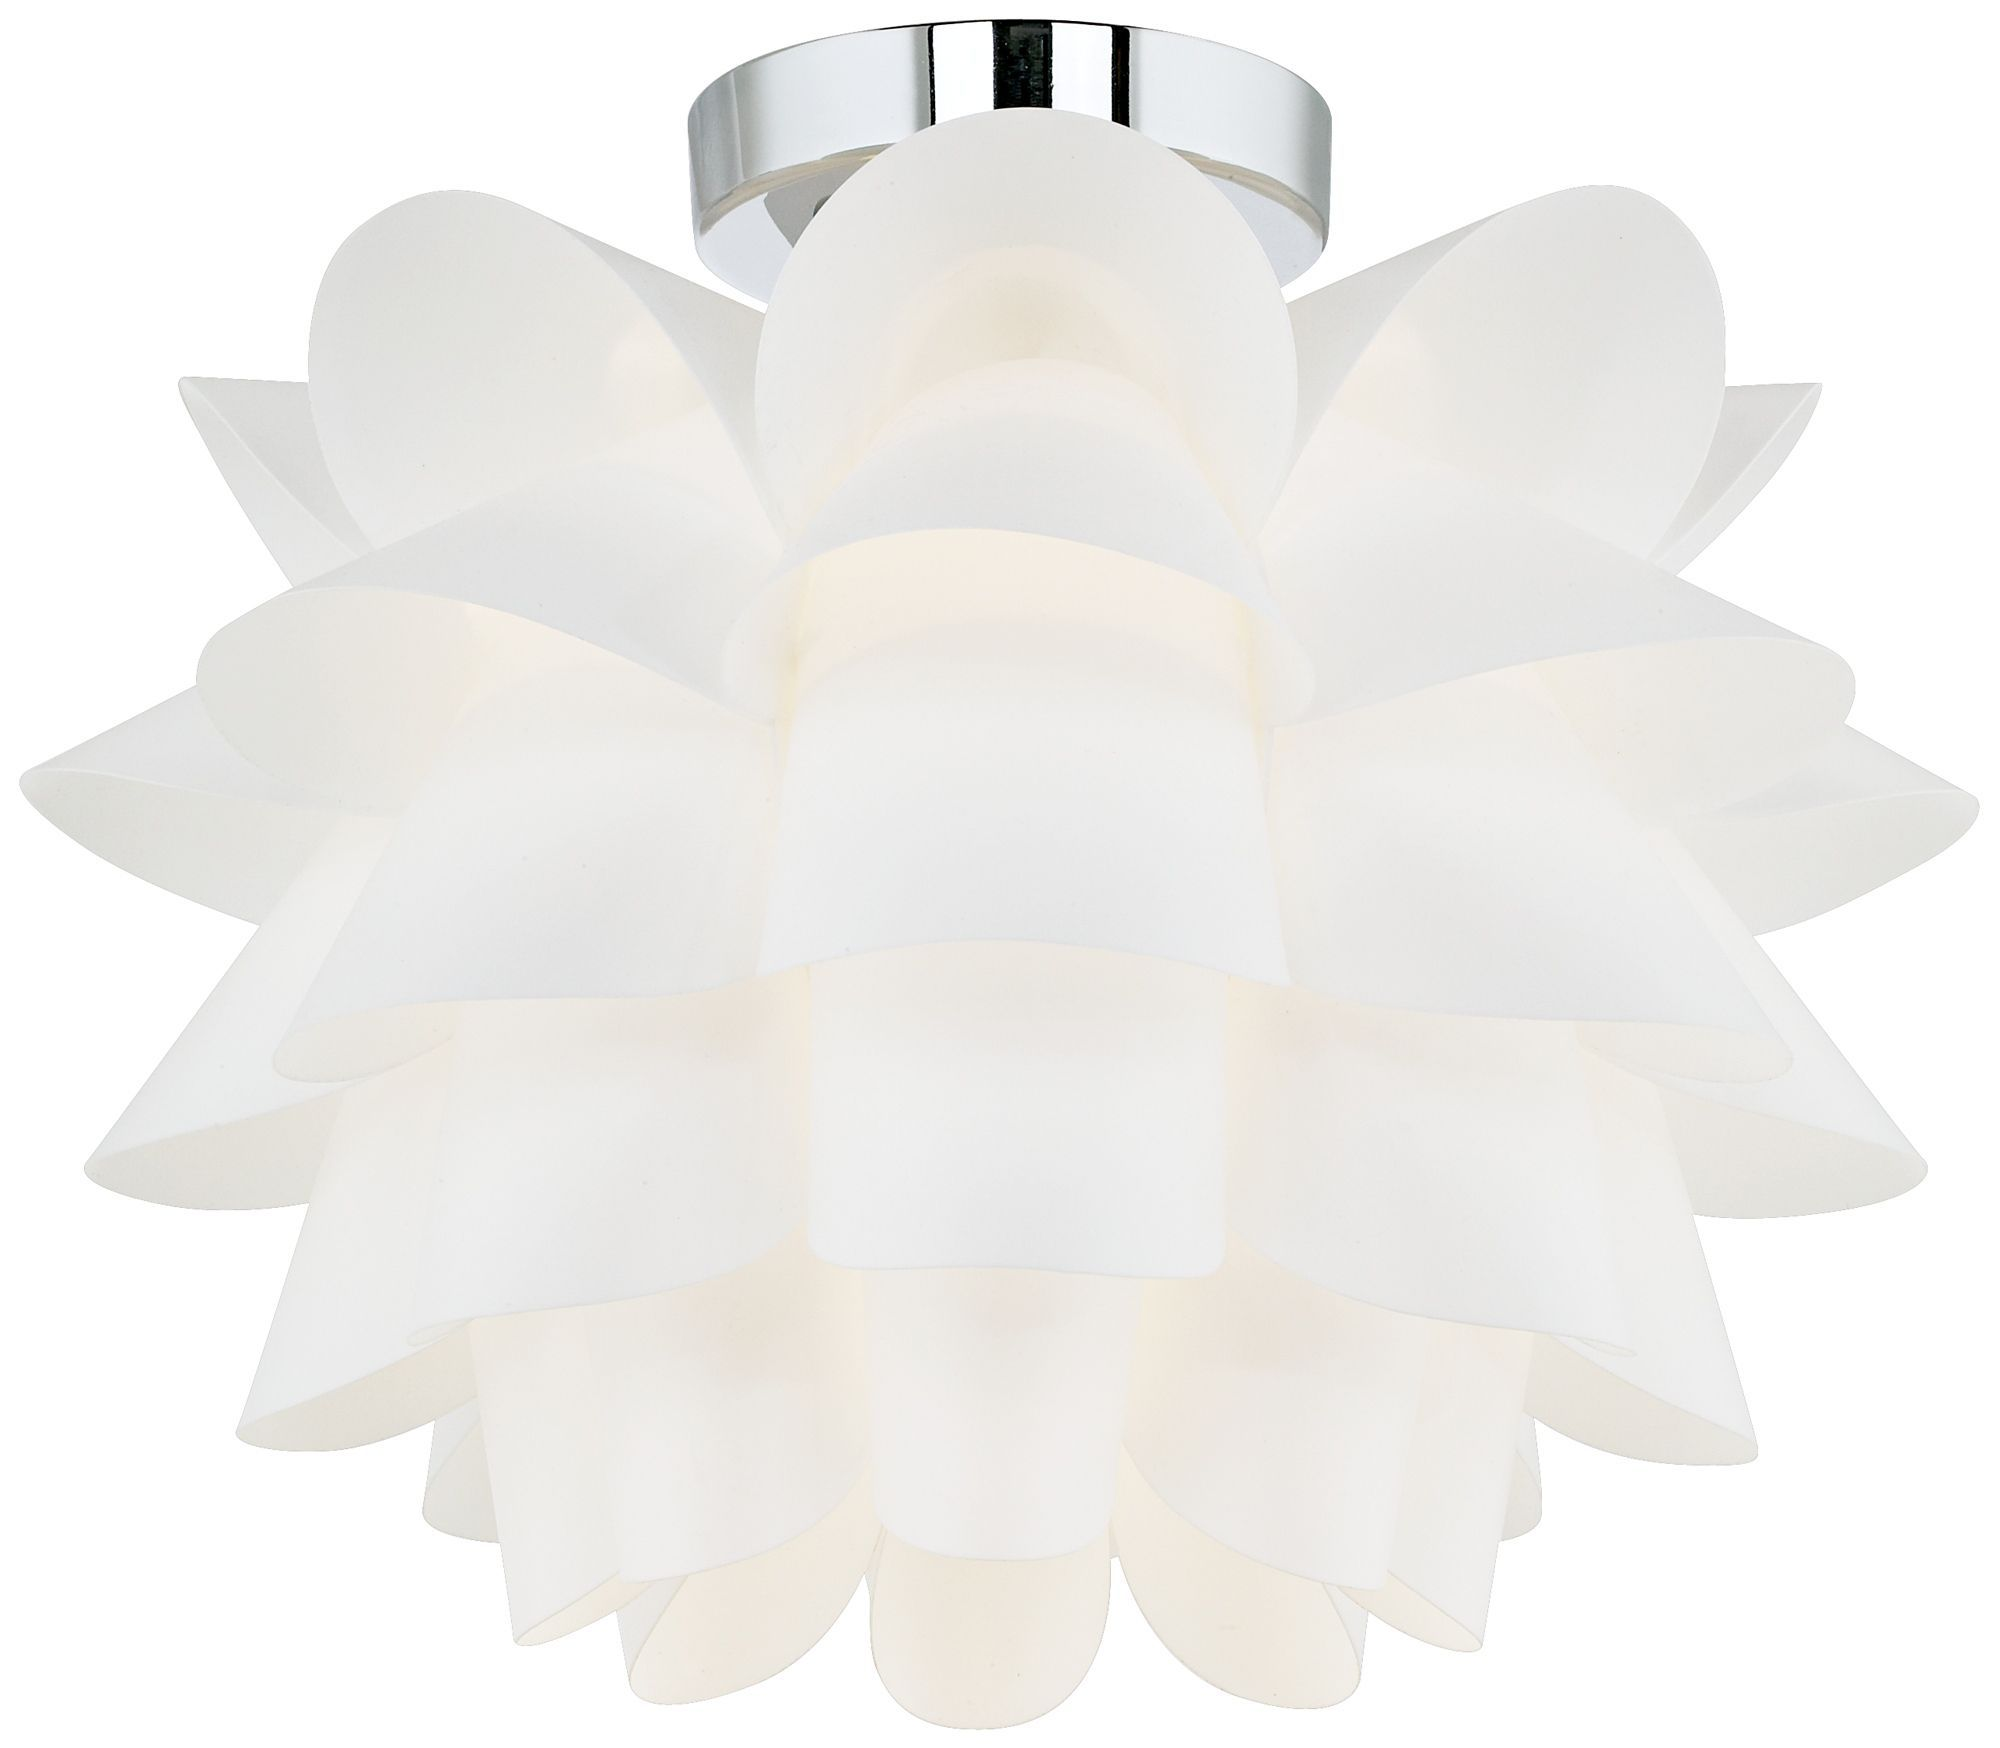 Possini euro design white flower 15 34 wide ceiling light possini euro design white flower 15 34 wide ceiling light eurostylelighting mightylinksfo